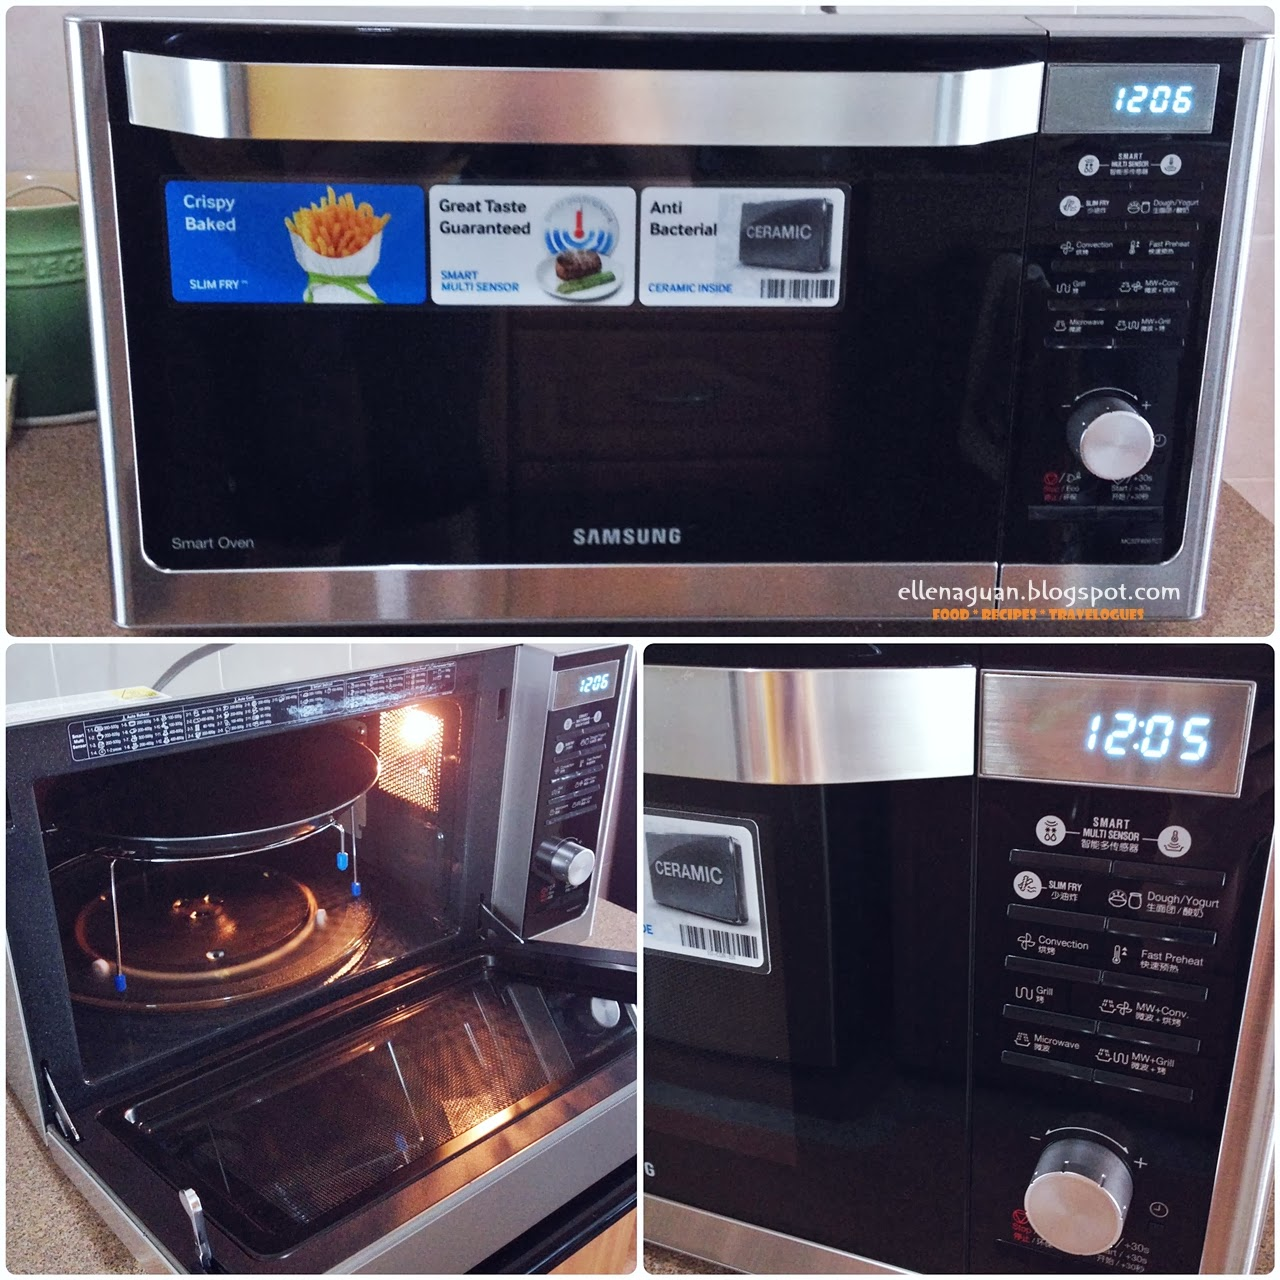 This 32 Litres Samsung Convection Microwave Oven MC32F606 Comes With 25  Sensor Reheat/ Cook Menus That Allows Consumers To Save Time And Effort  When ...